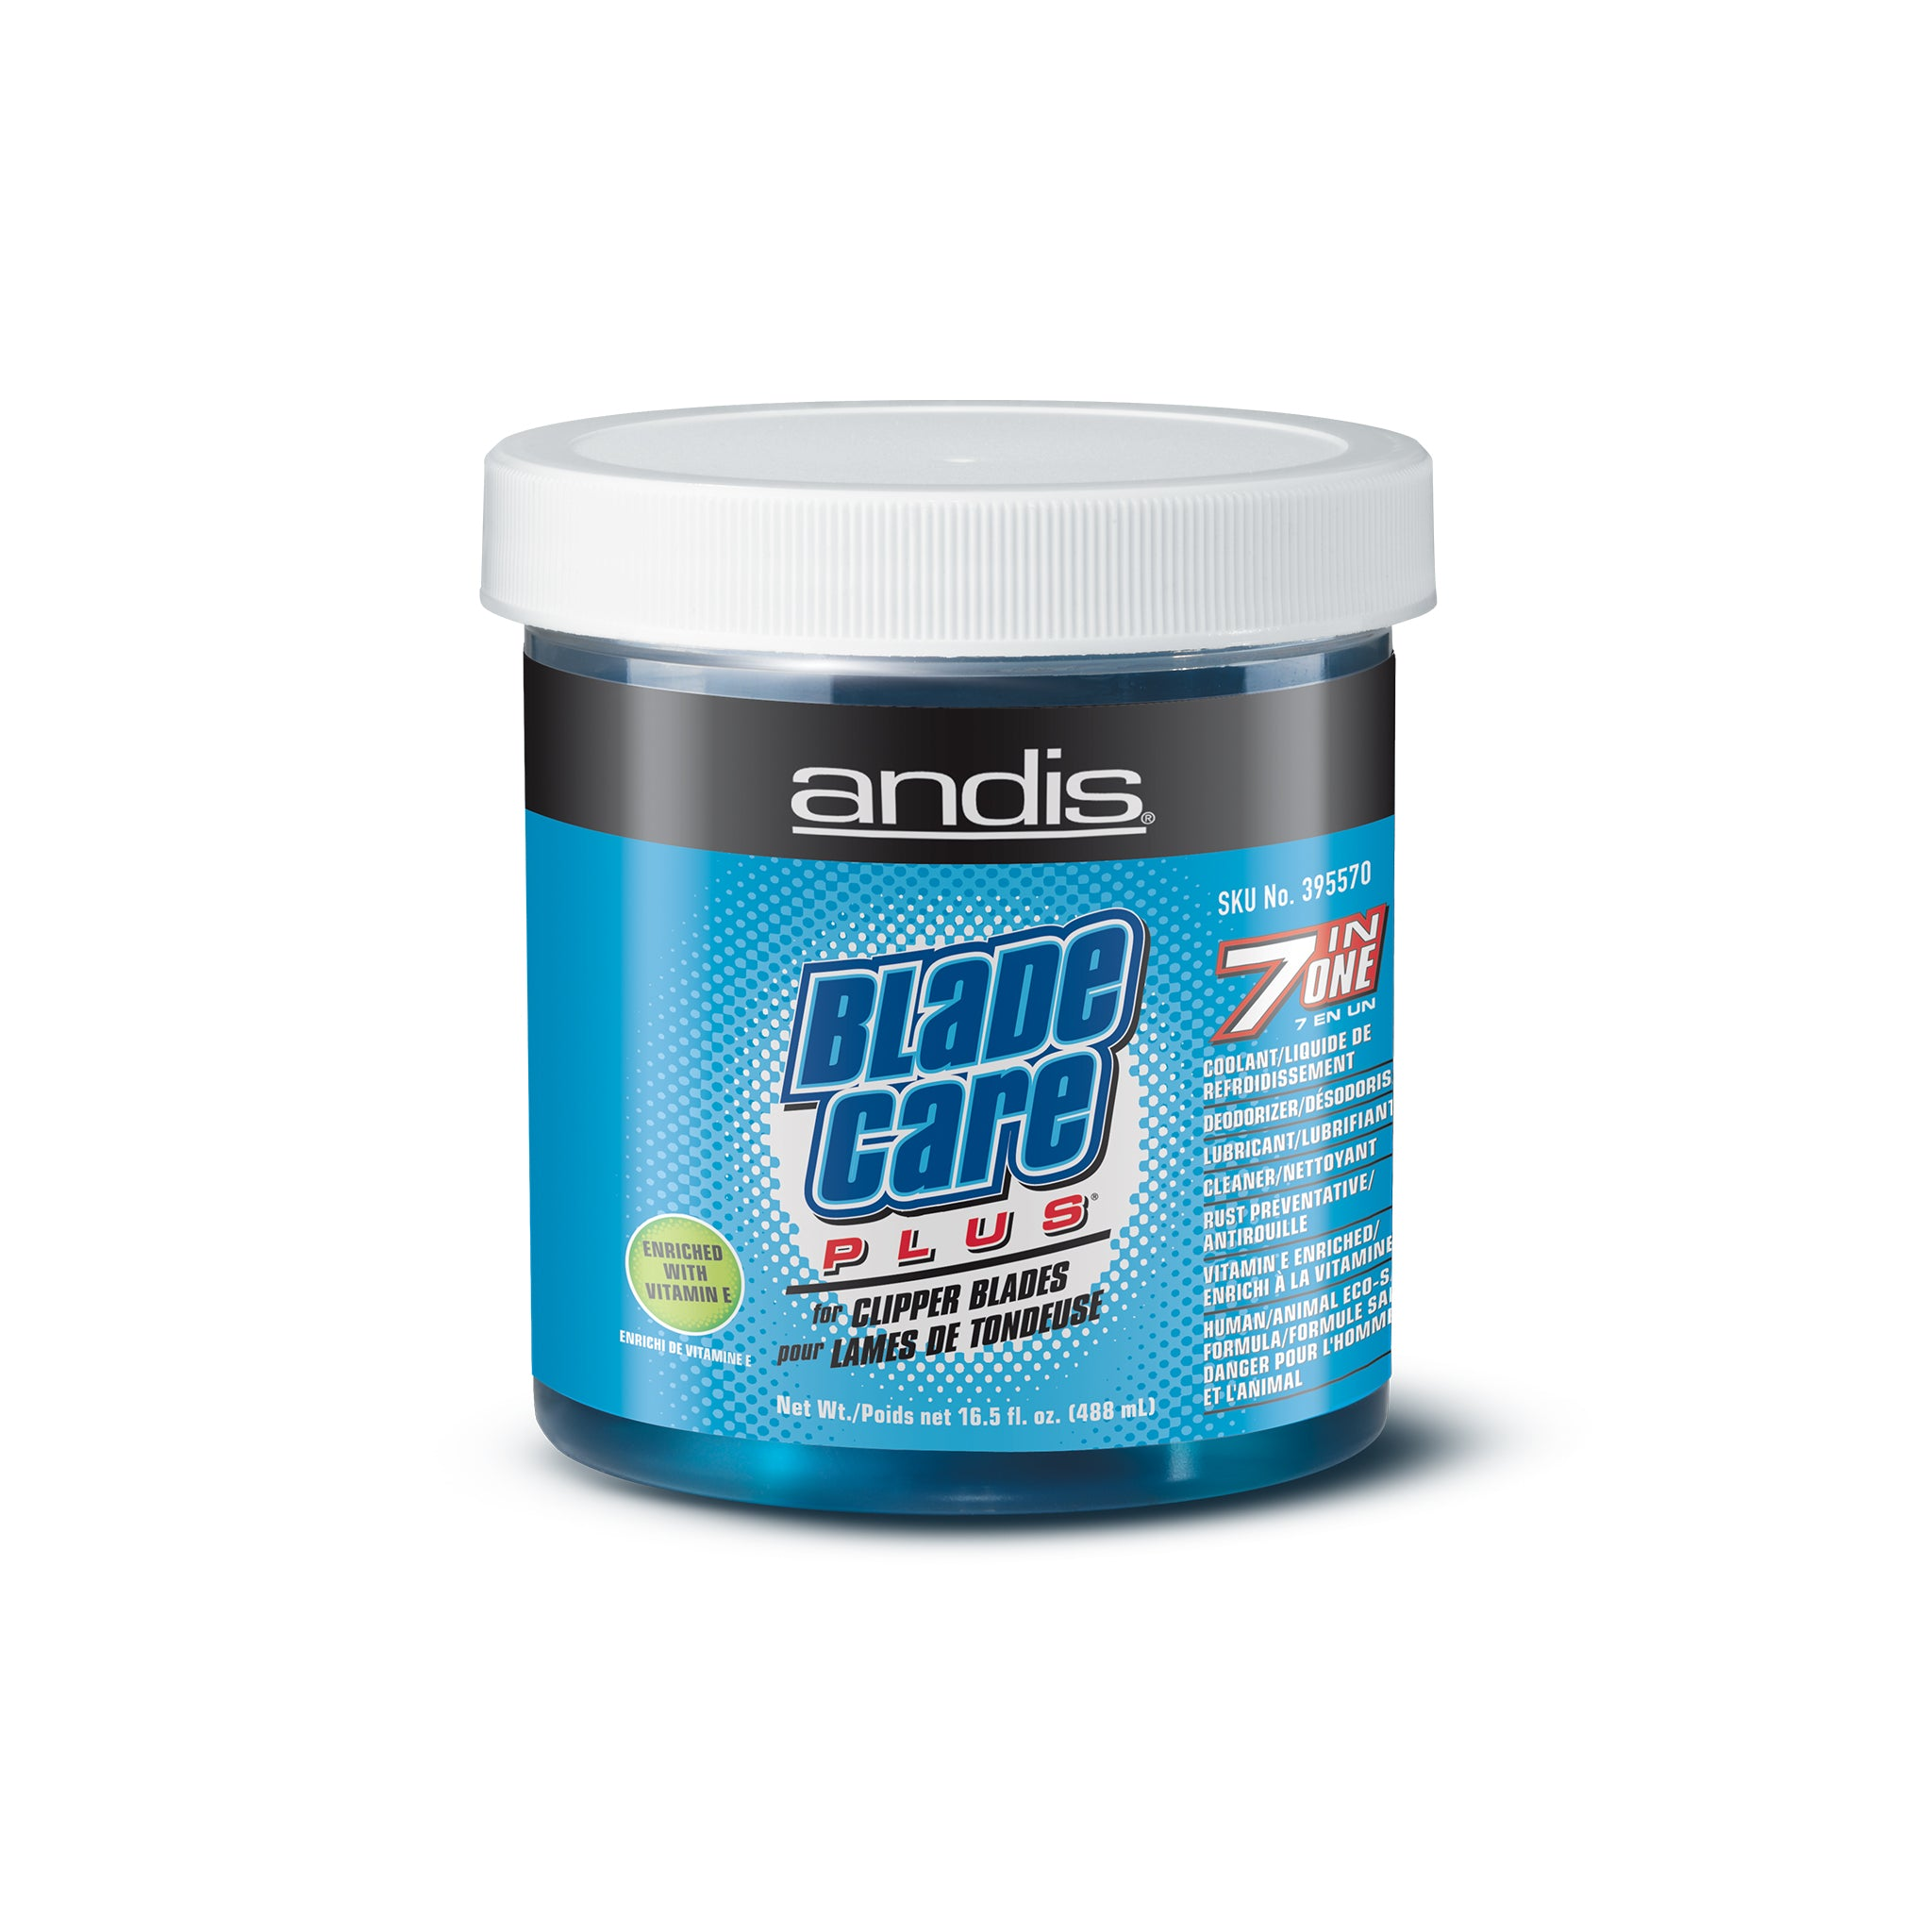 Andis Blade Care Tub